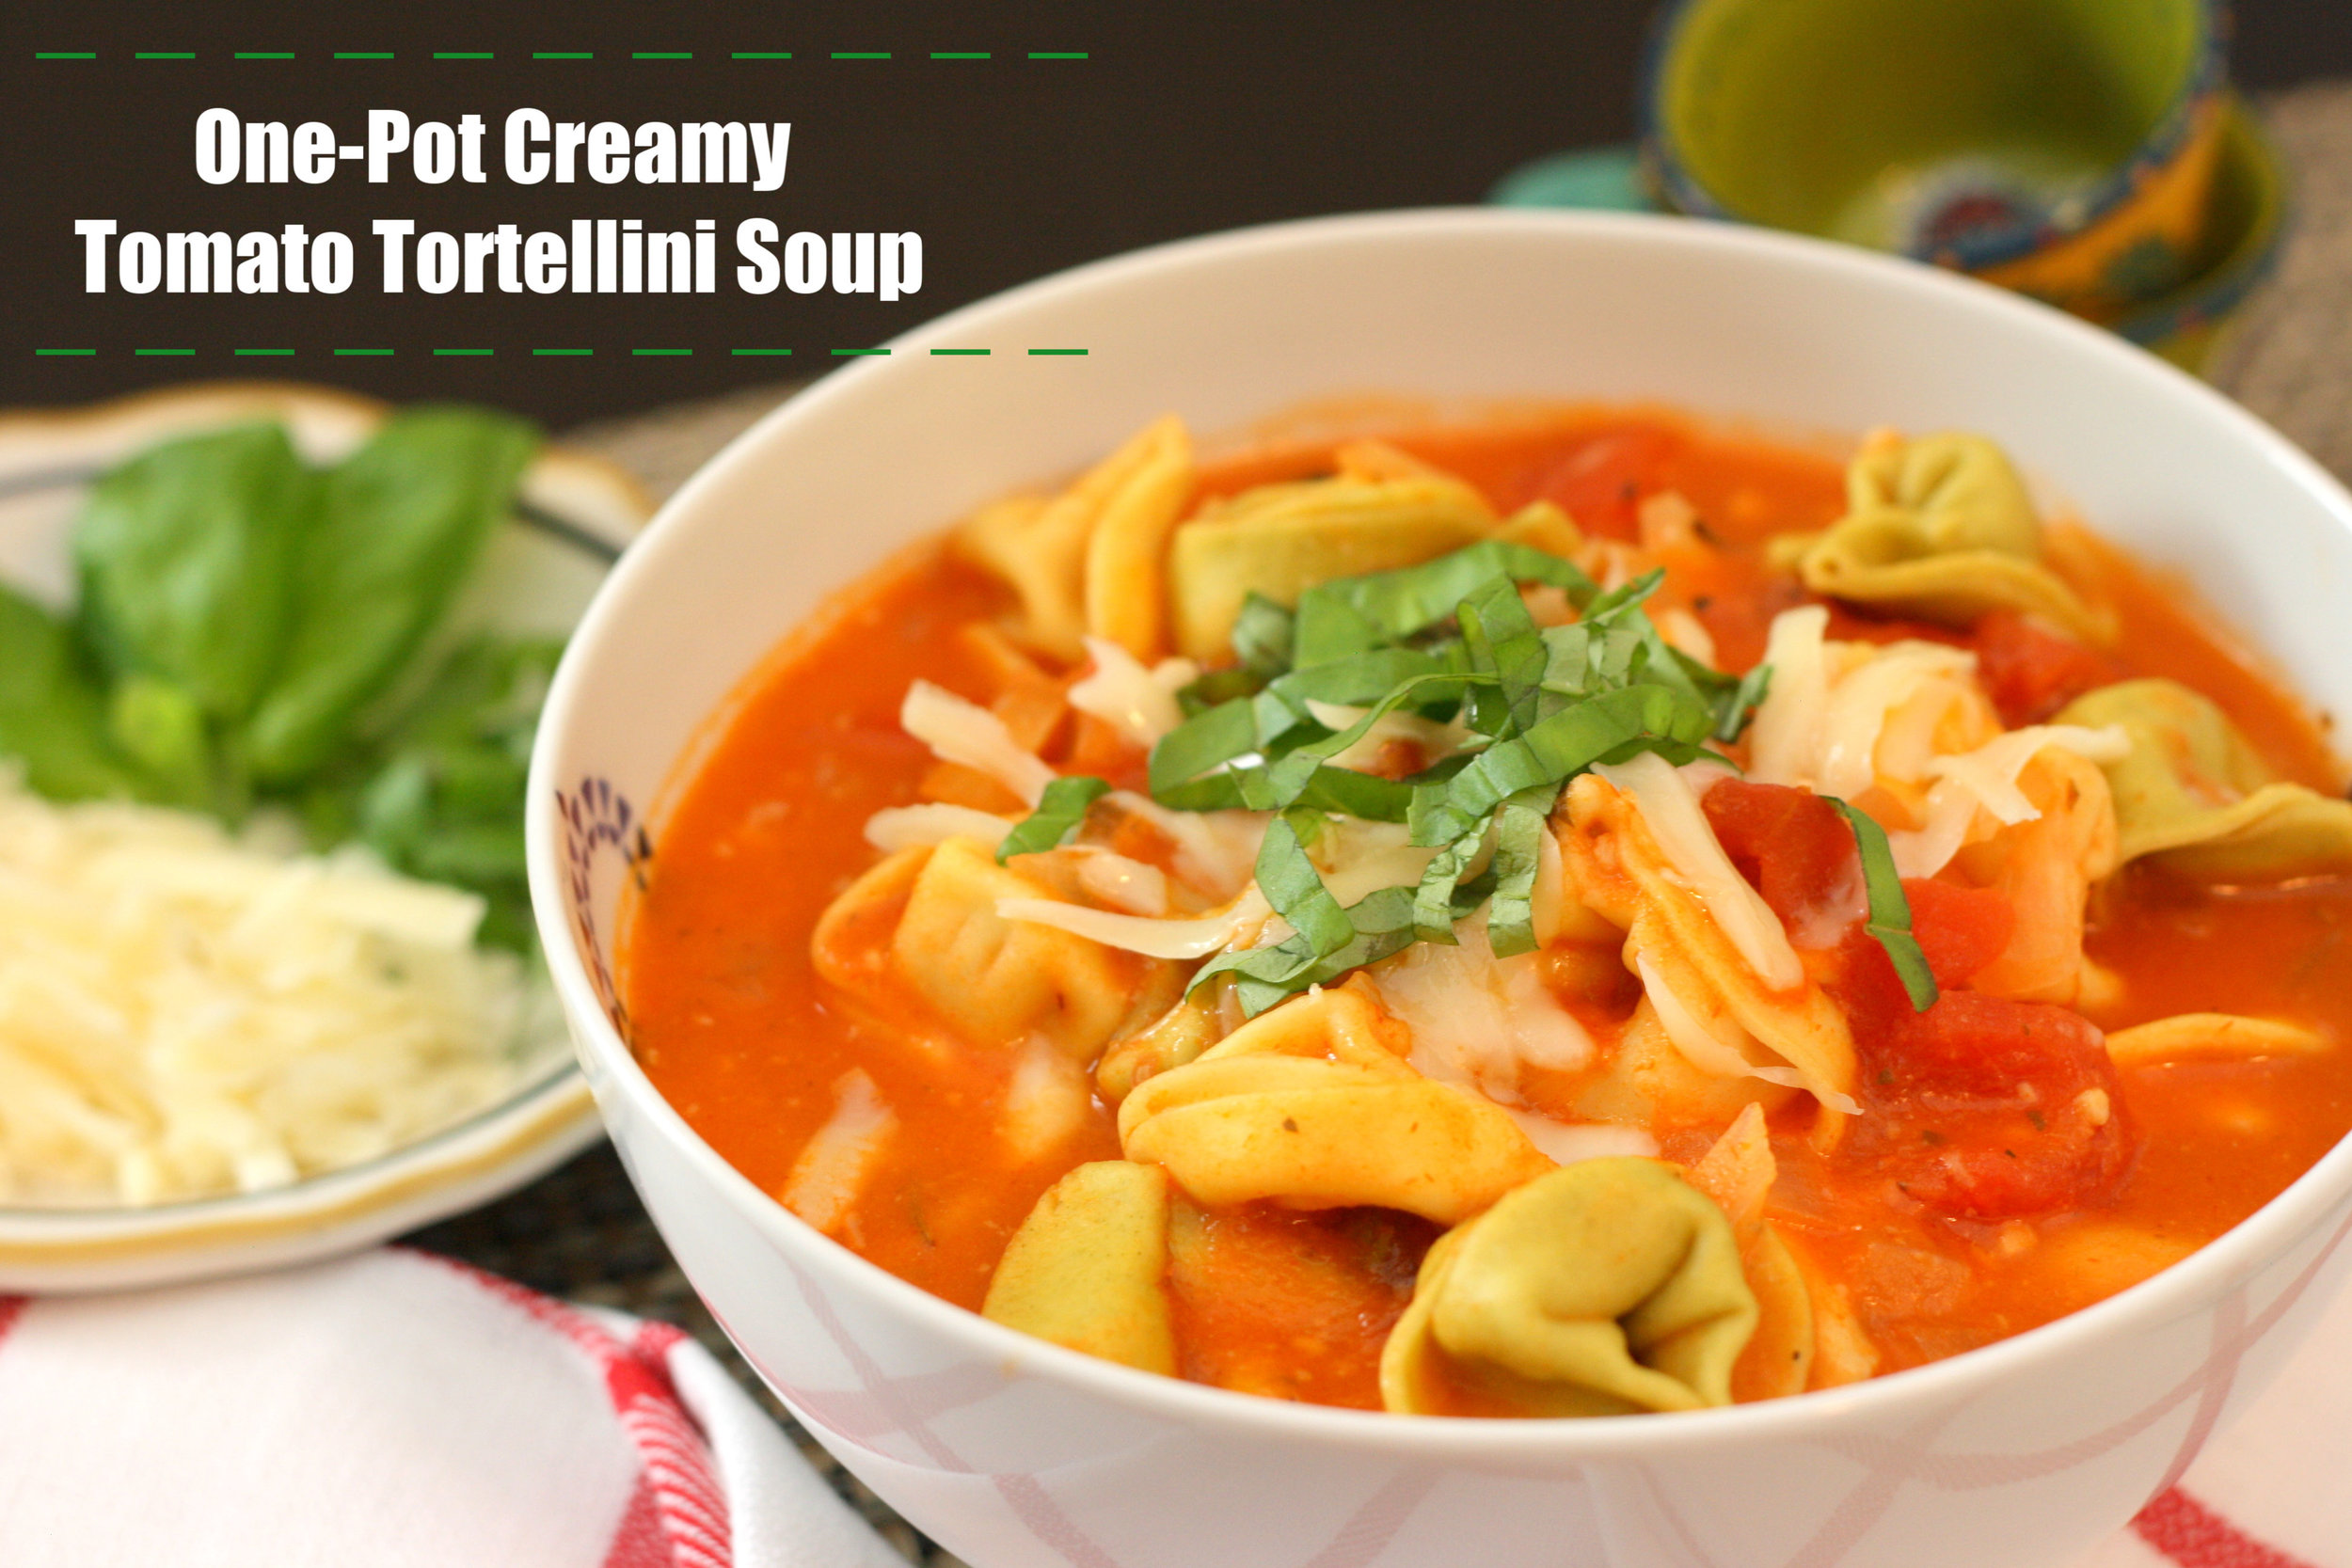 One-Pot Creamy Tomato Torteliini Soup9-text.jpg